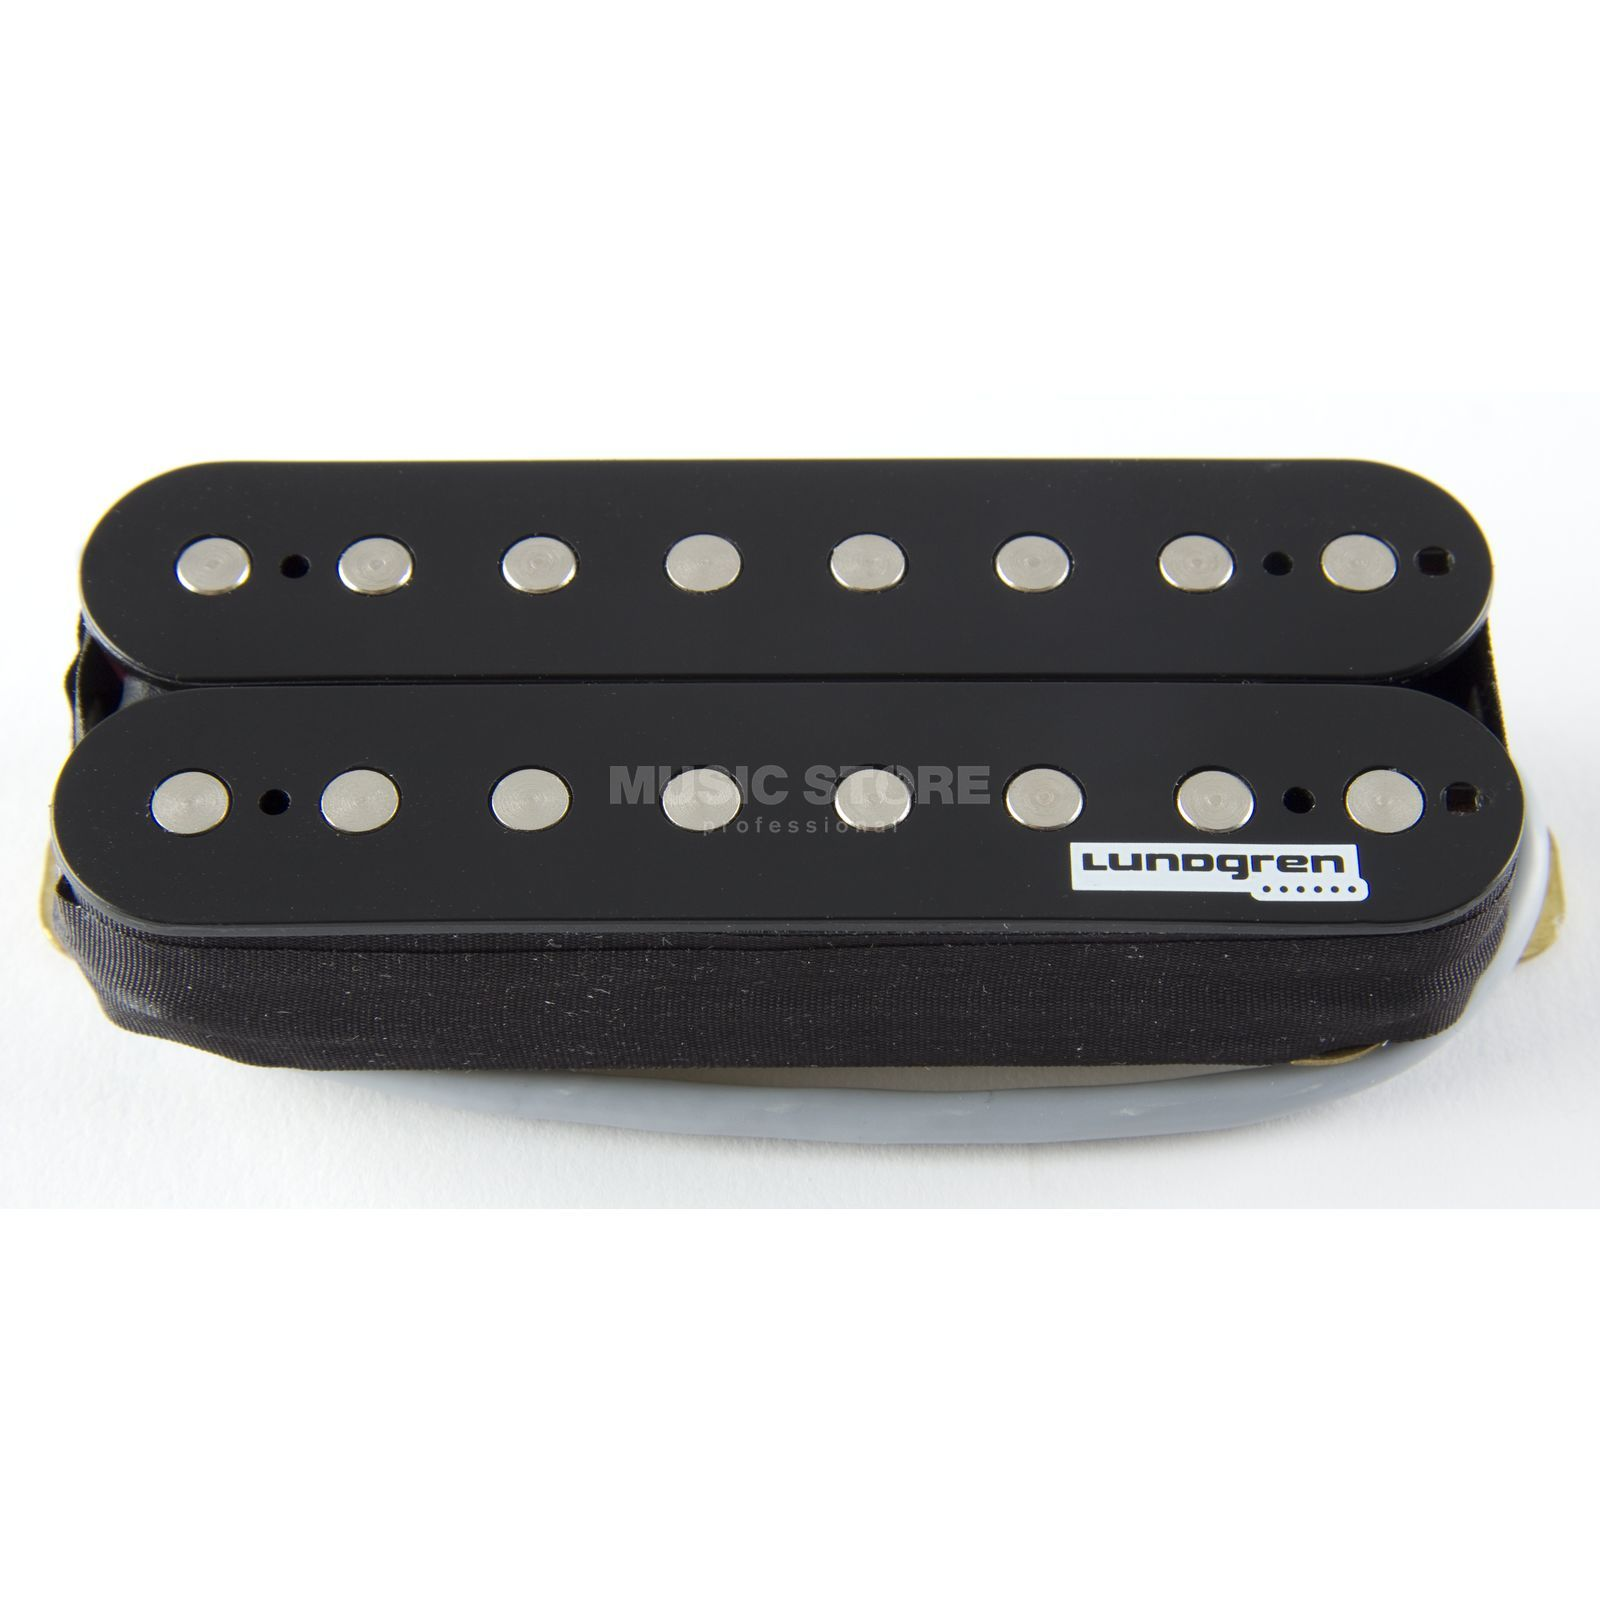 Lundgren Guitar Pickups M8 Humbucker Bridge Produktbild